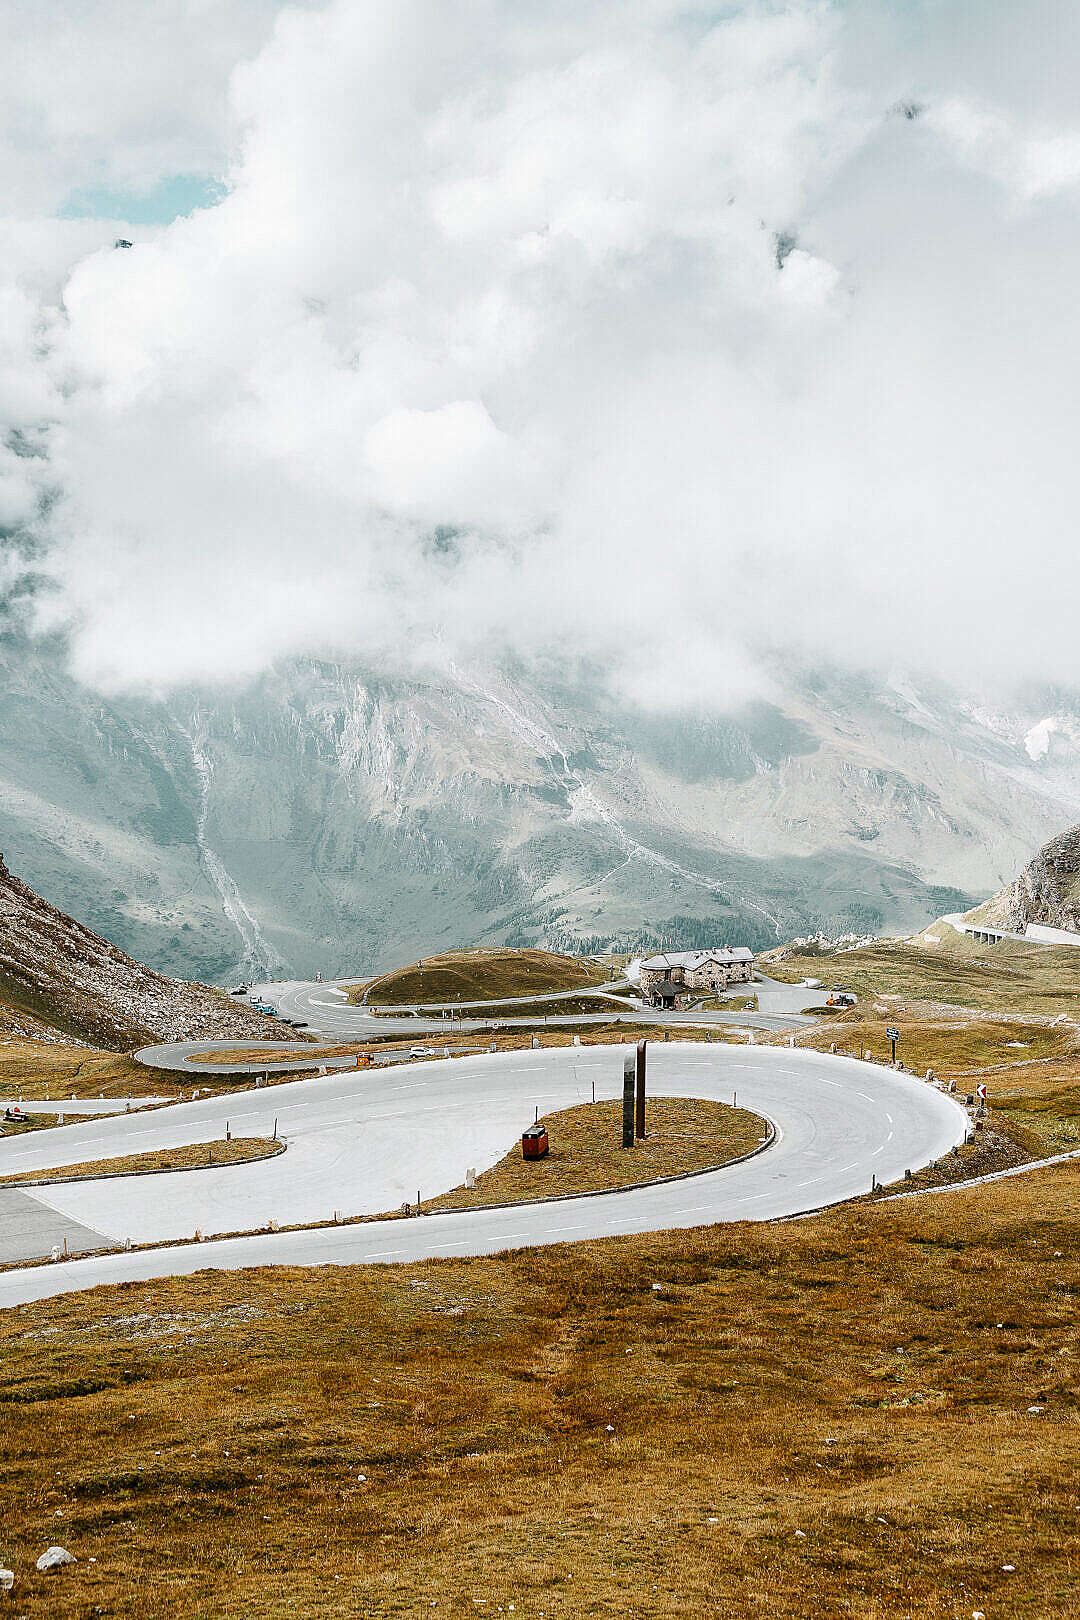 Download Hairpin Turn on Grossglockner High Alpine Road FREE Stock Photo